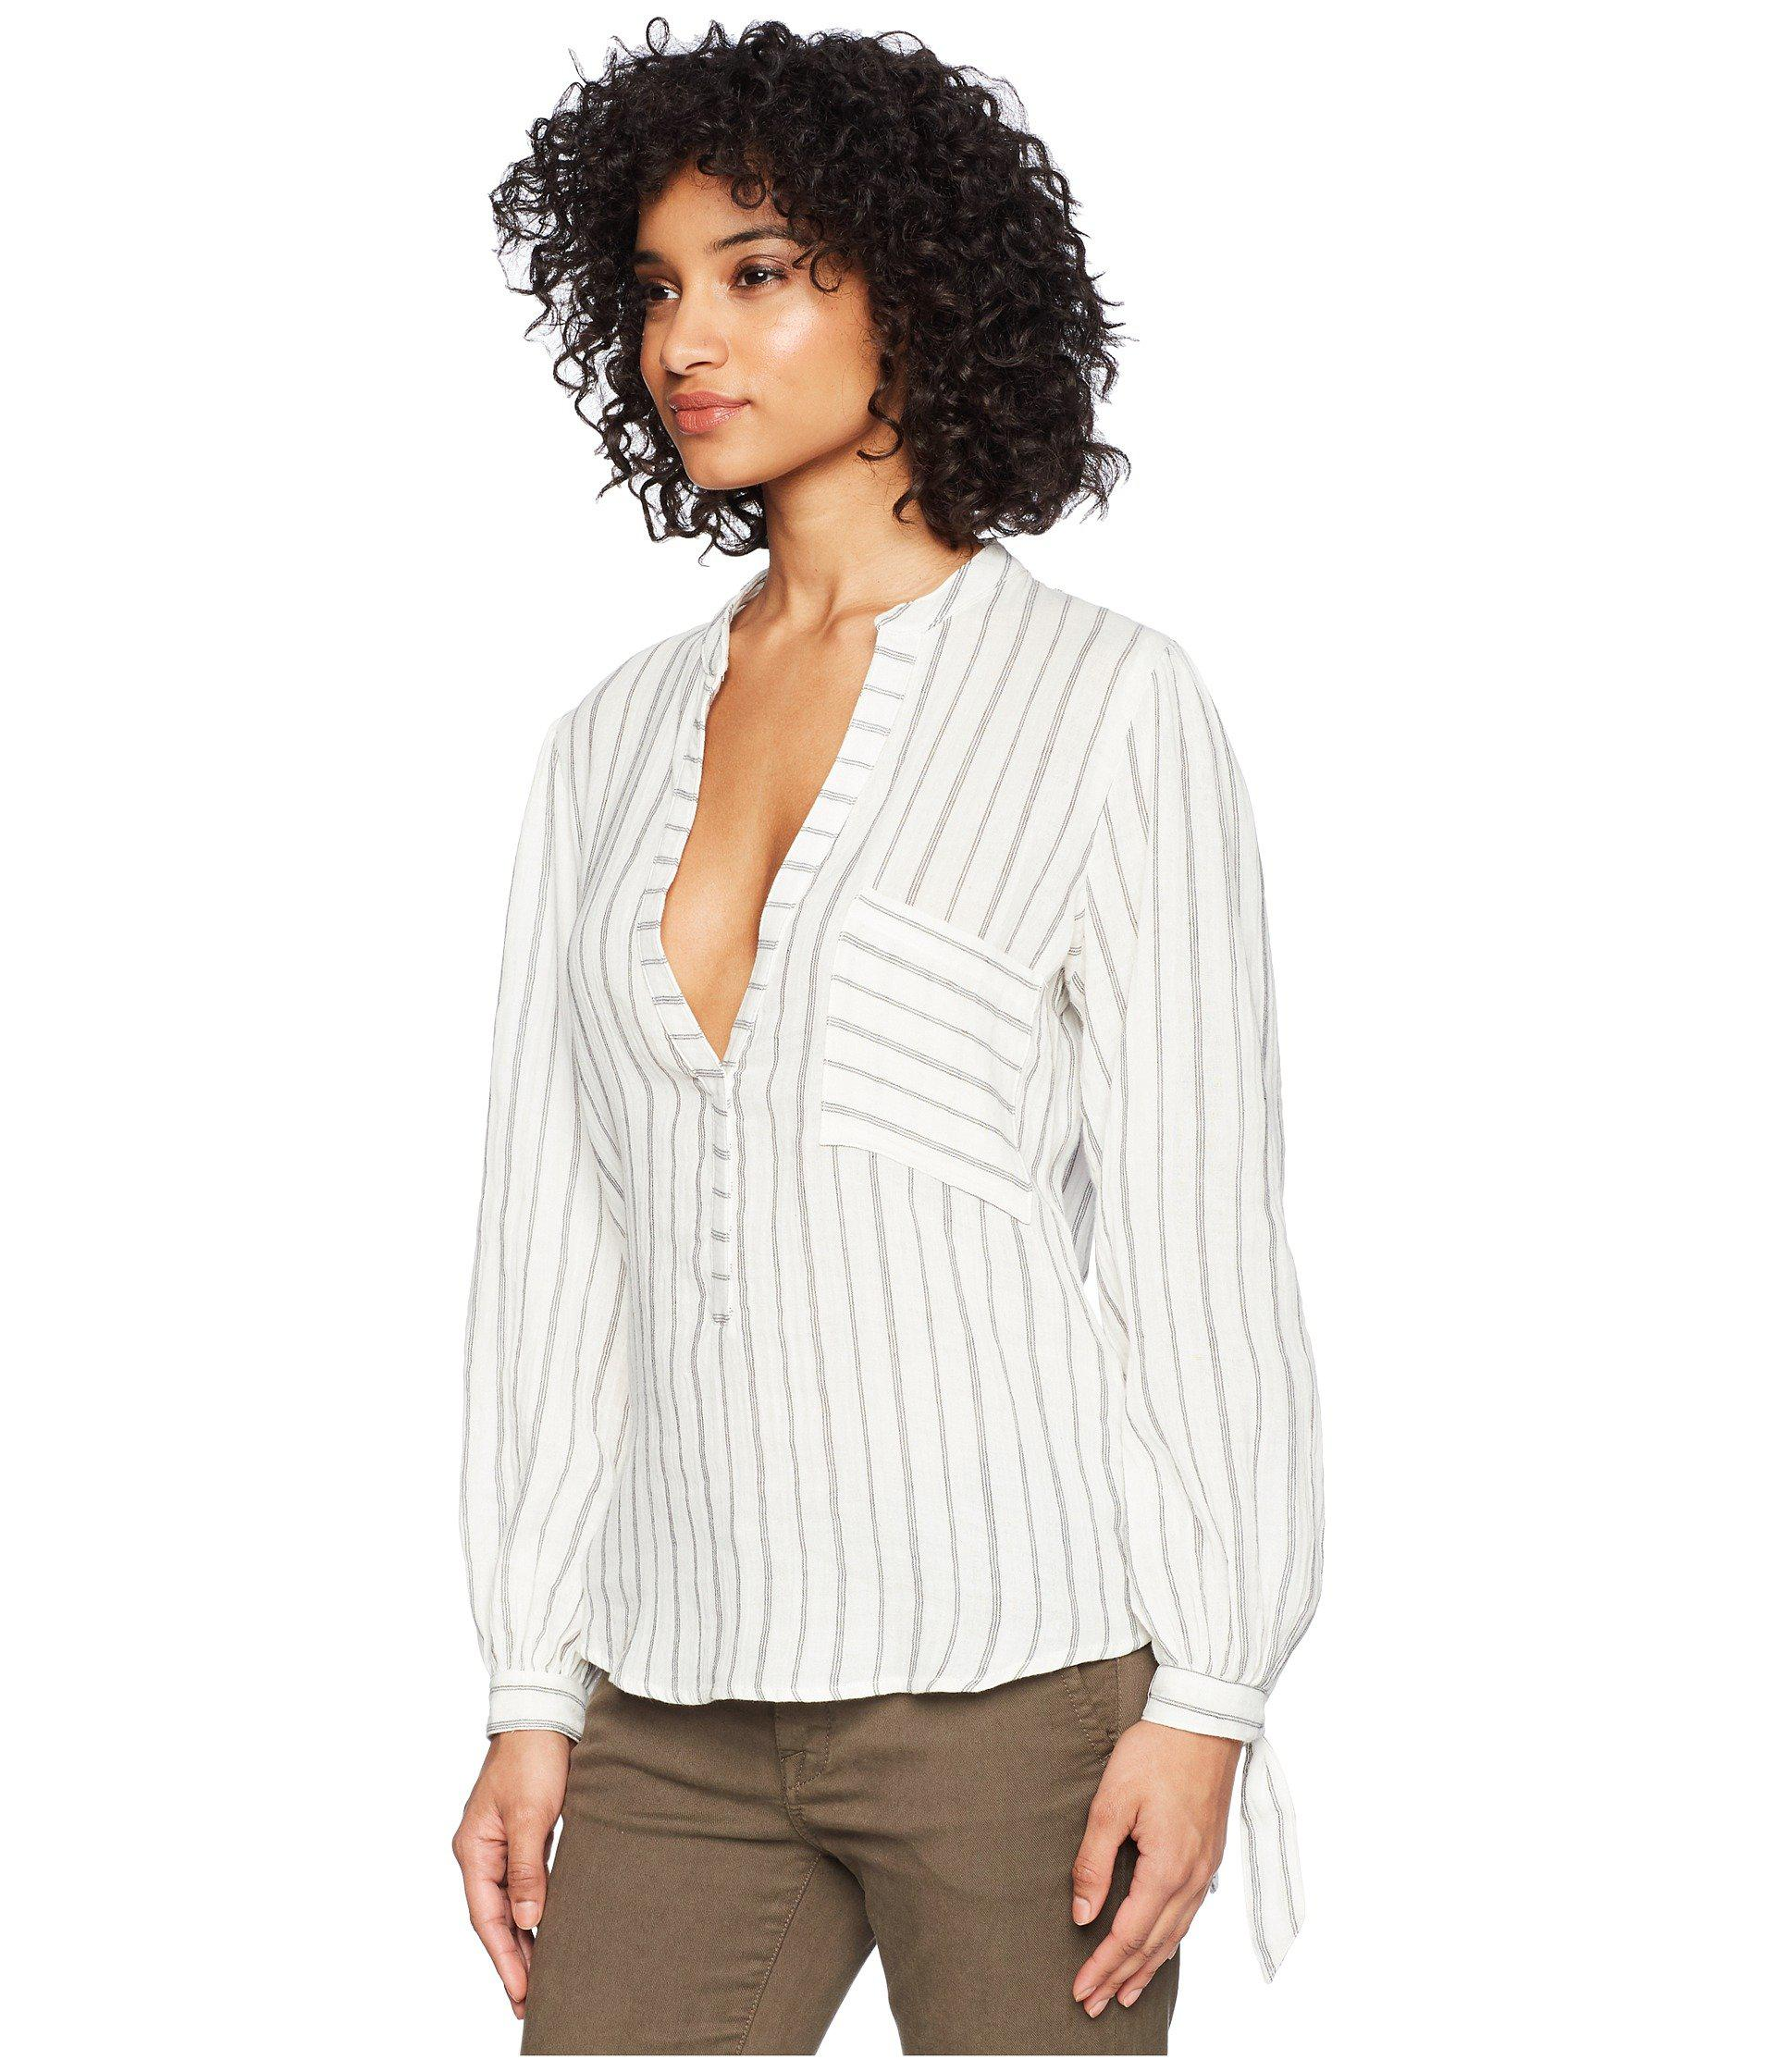 Lyst Jen S Pirate Booty Salerno Top Pinstripe Women S Clothing